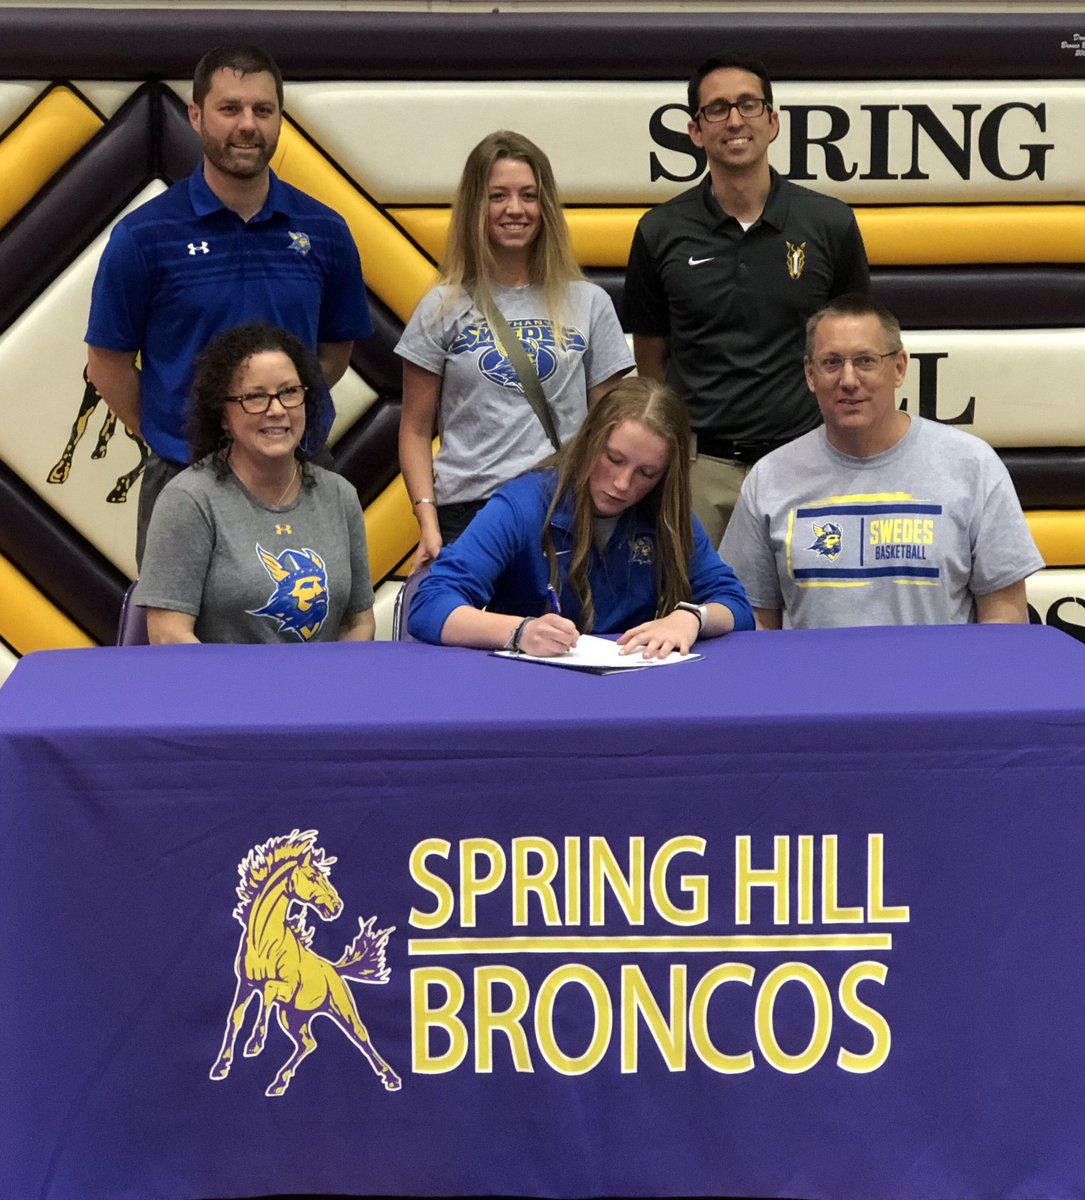 Congratulations to Meghan Goff for signing a letter of intent to Bethany college to continue her basketball career! #YouGetWhatYouWorkFor<br>http://pic.twitter.com/DYS3oj2Vmj